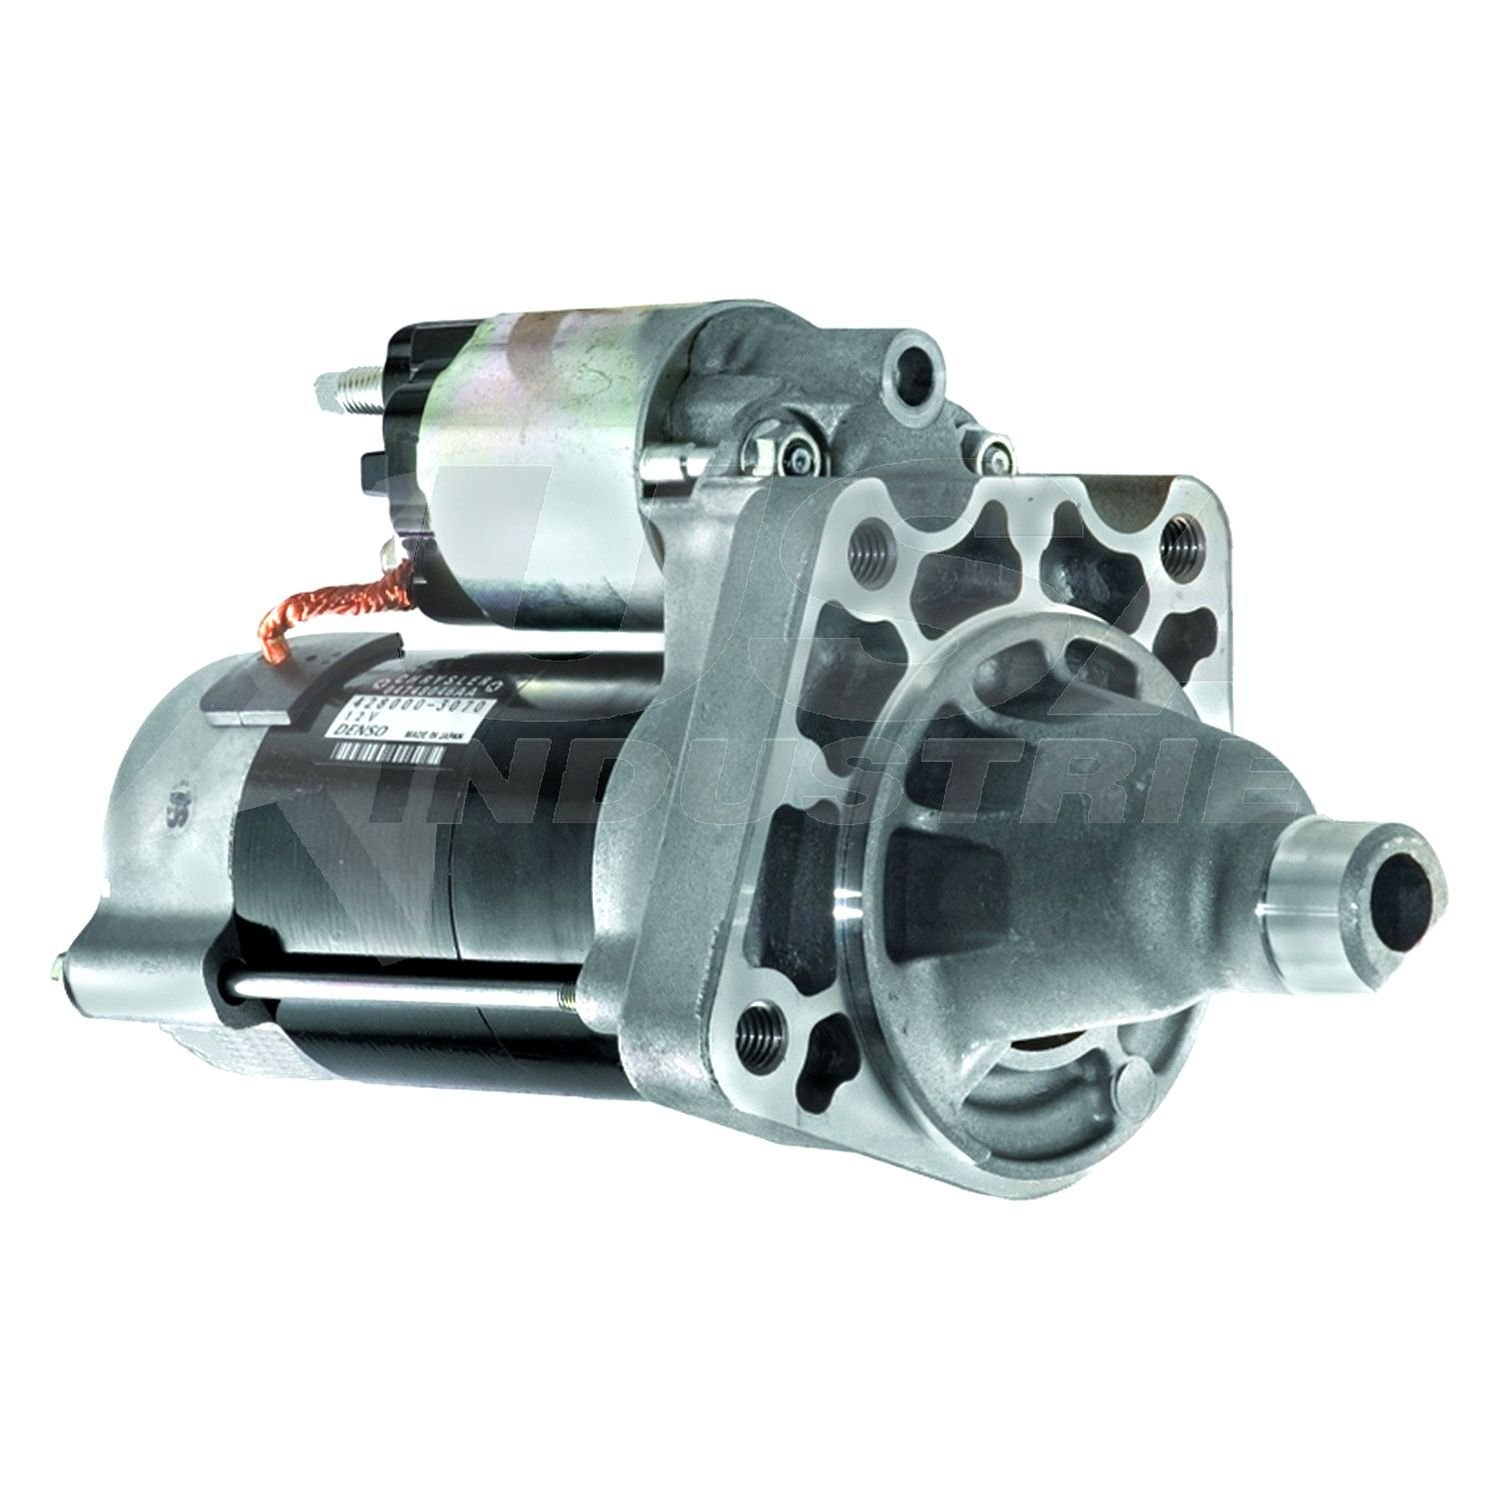 Chrysler 300 2006 2009 Remanufactured Starter: Volkswagen Routan 2009 Remanufactured